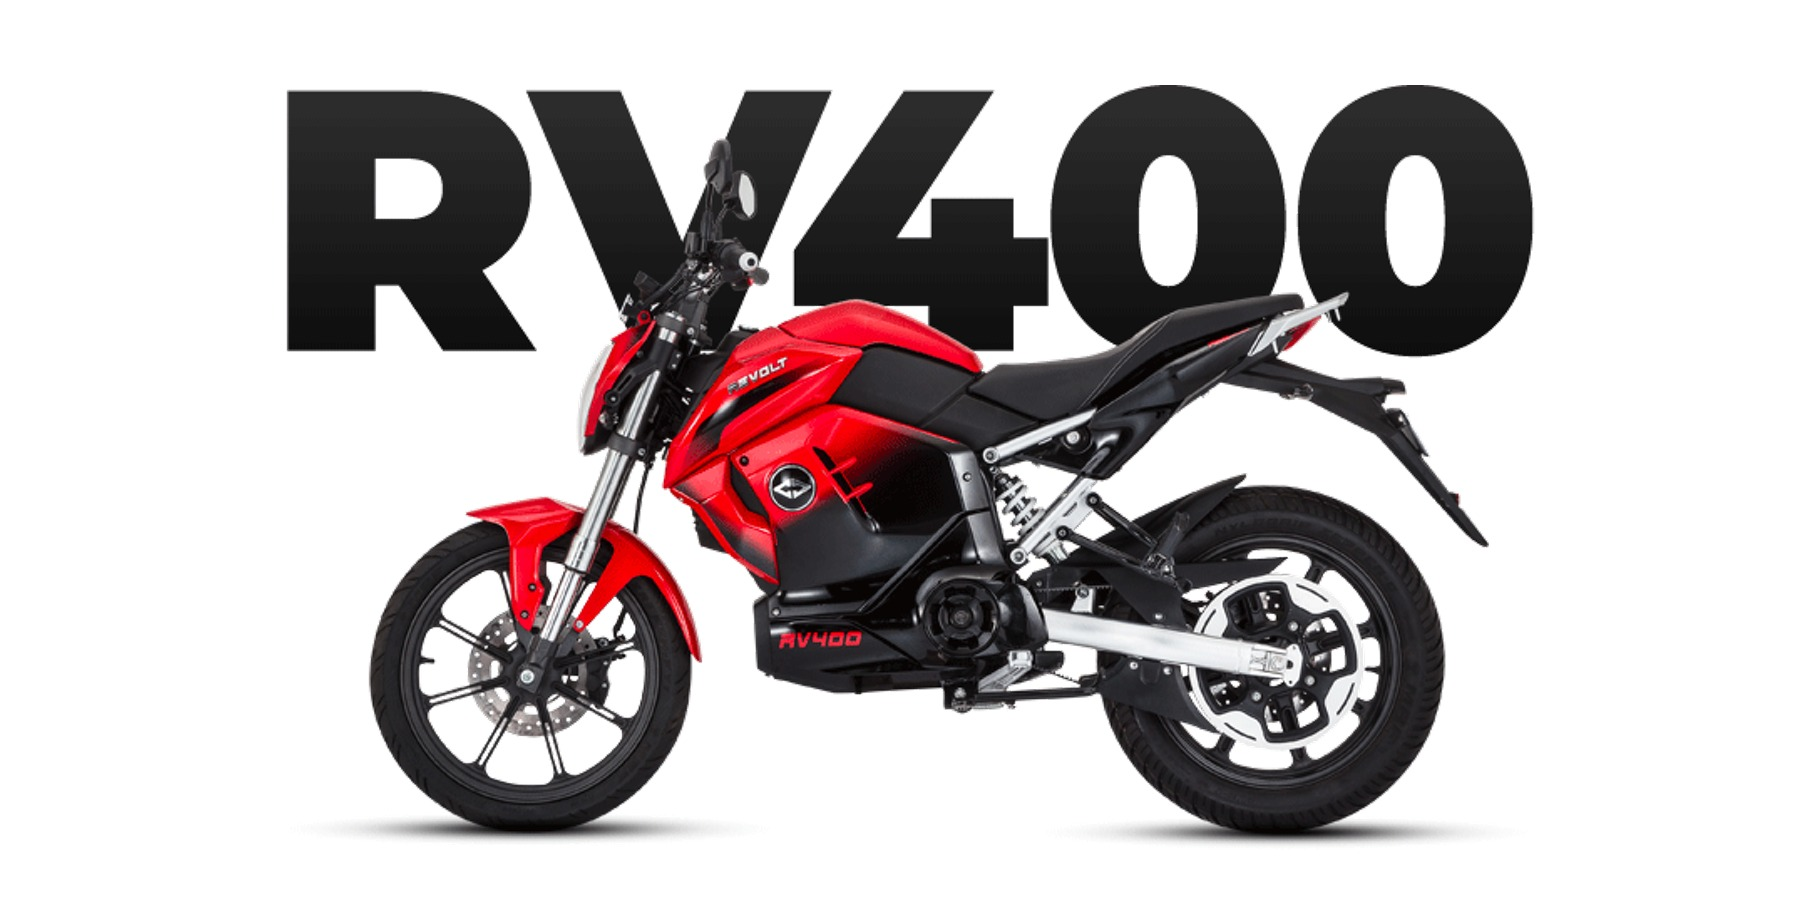 Popular electric motorcycle brand reopens orders, closes again 2 hours later after selling out